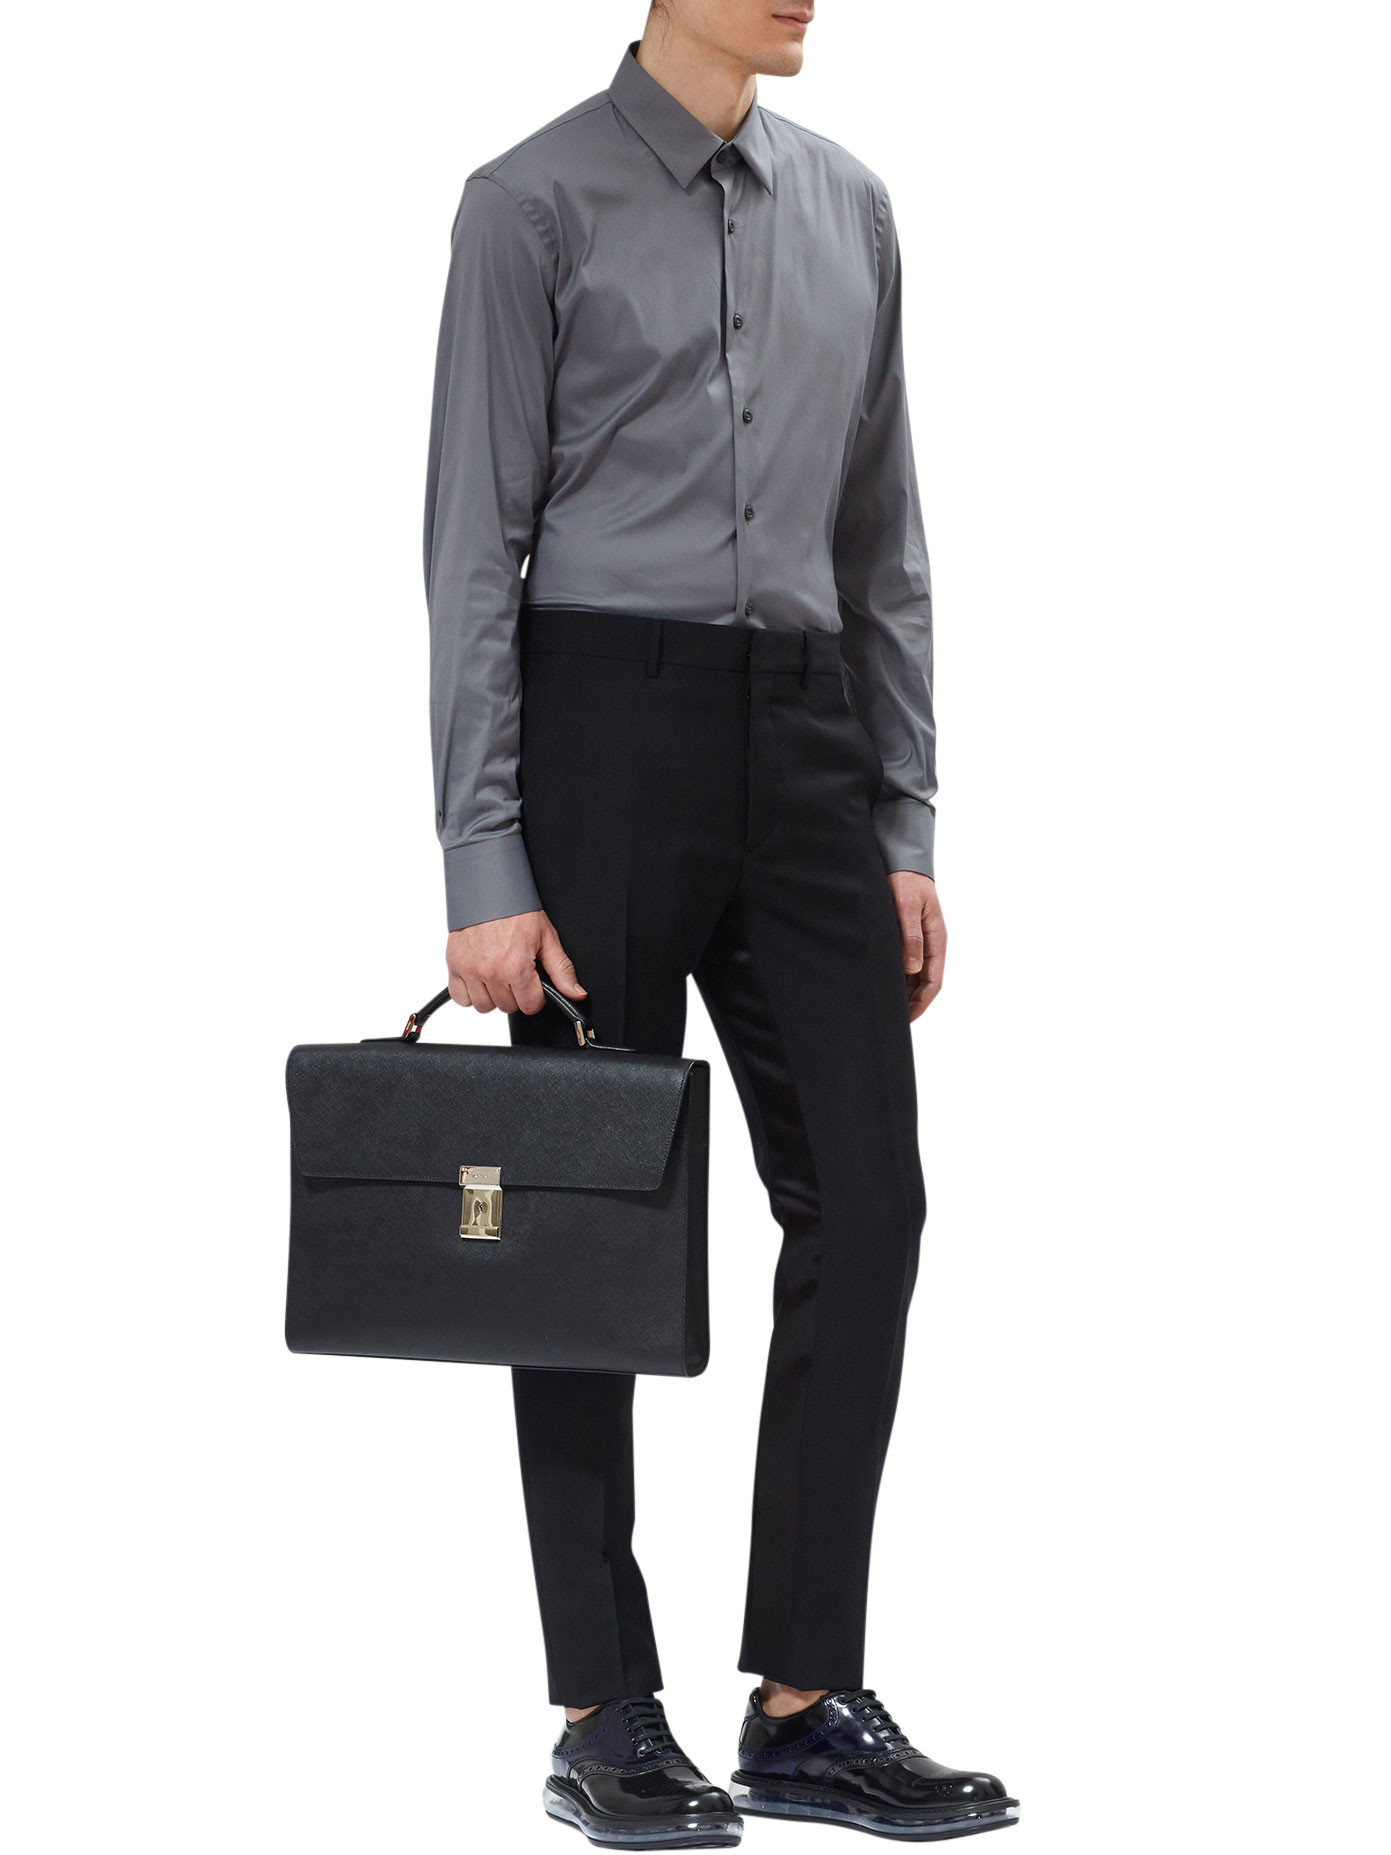 Prada Mens Duffle Bag | Prada Briefcase | Prada Men Shoulder Bag